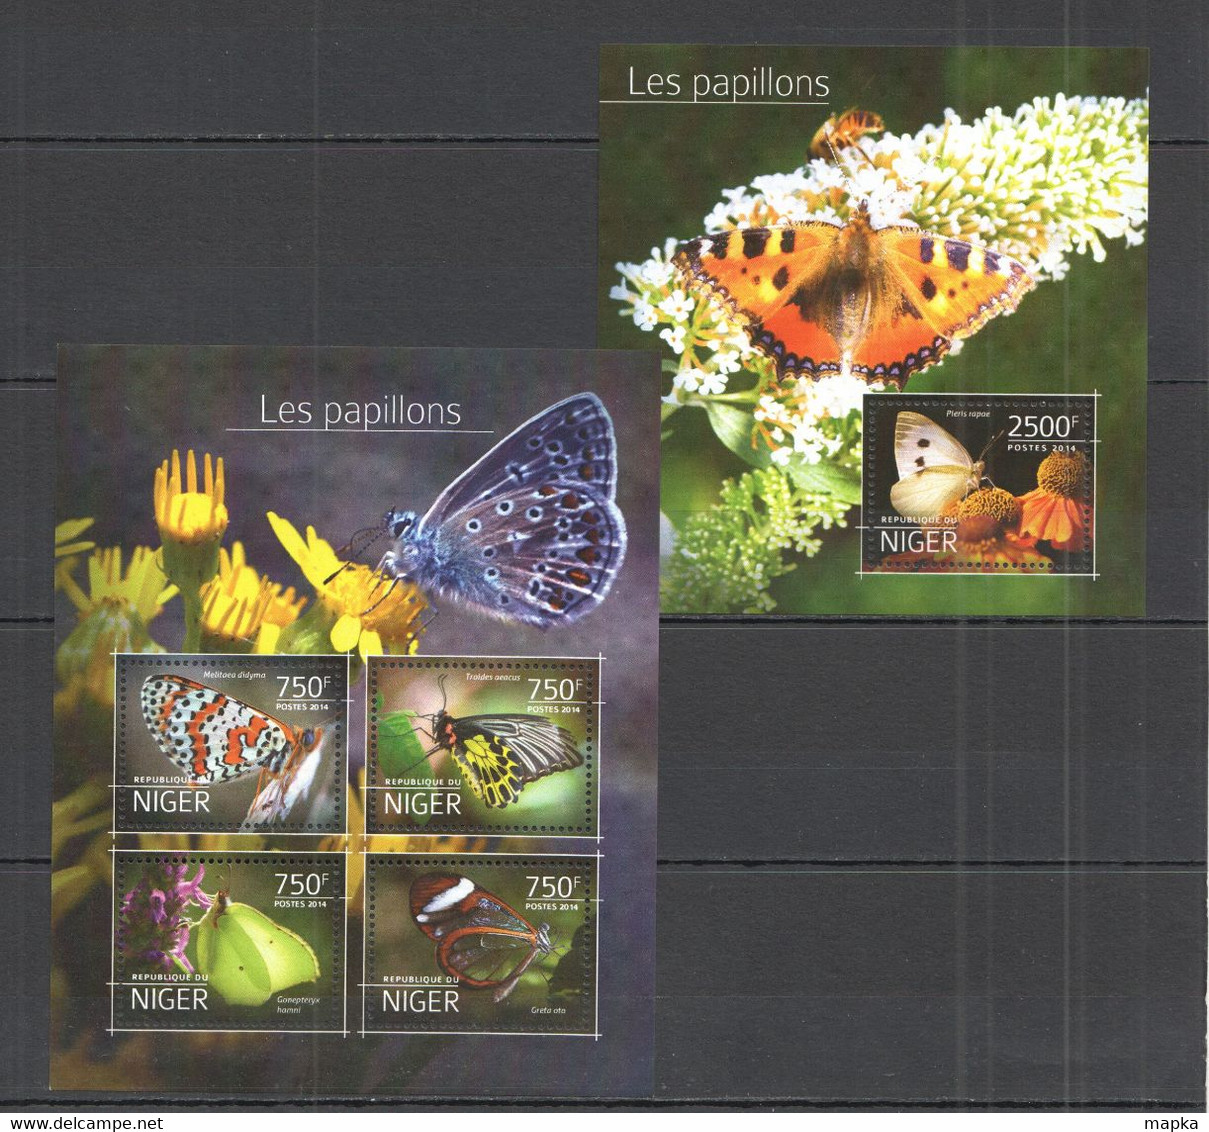 XX366 LAST ONE IN STOCK 2014 NIGER FAUNA INSECTS BUTTERFLIES LES PAPILLONS 1KB+1BL MNH - Mariposas